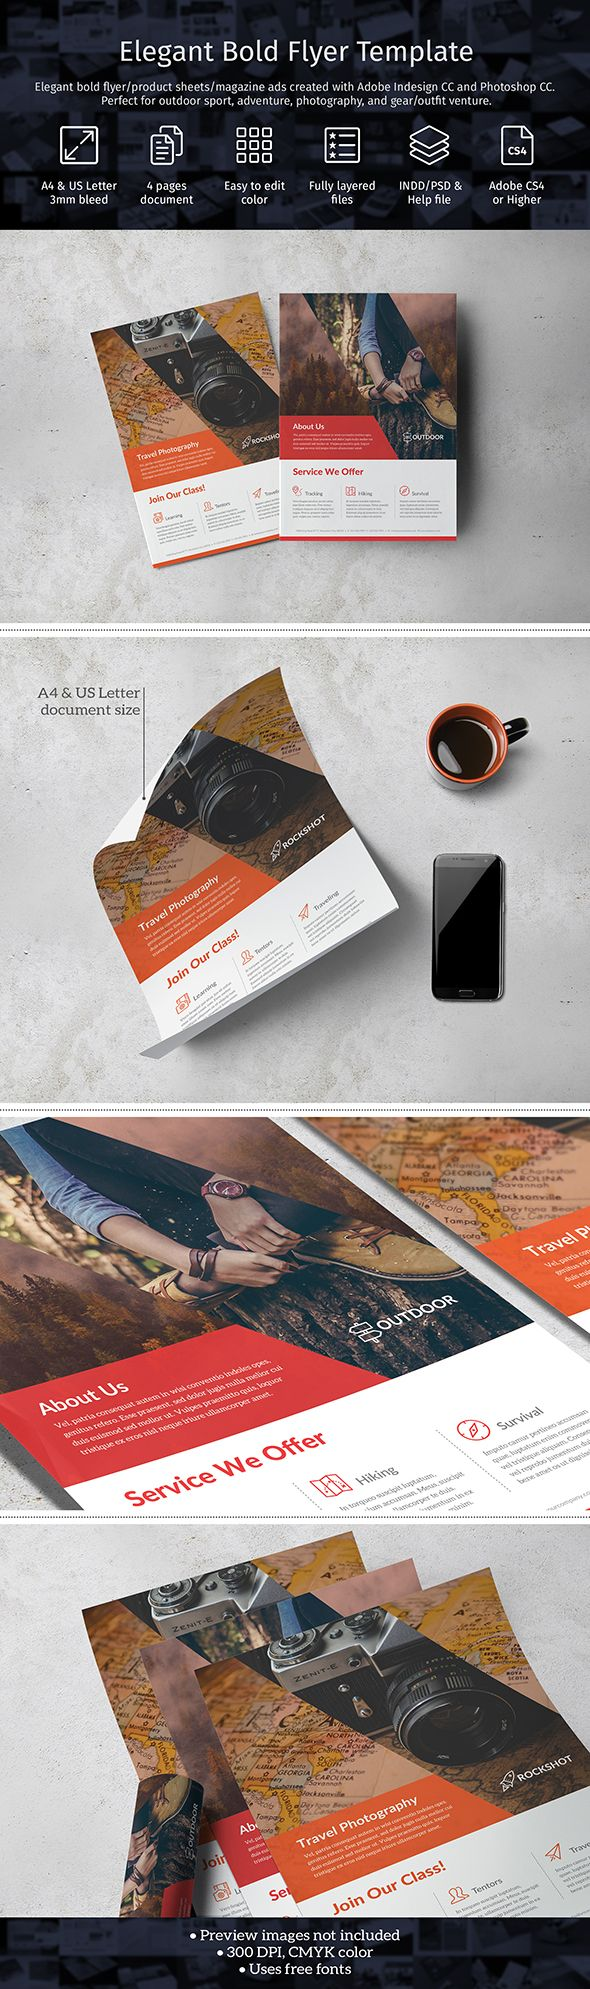 Best seller item, now available in PSD format. Easy to edit color through Color Picker layer. Vector Smart Object. Compatible with Adobe Photoshop CS4 or higher. Get it now --> https://crmrkt.com/JWgR4